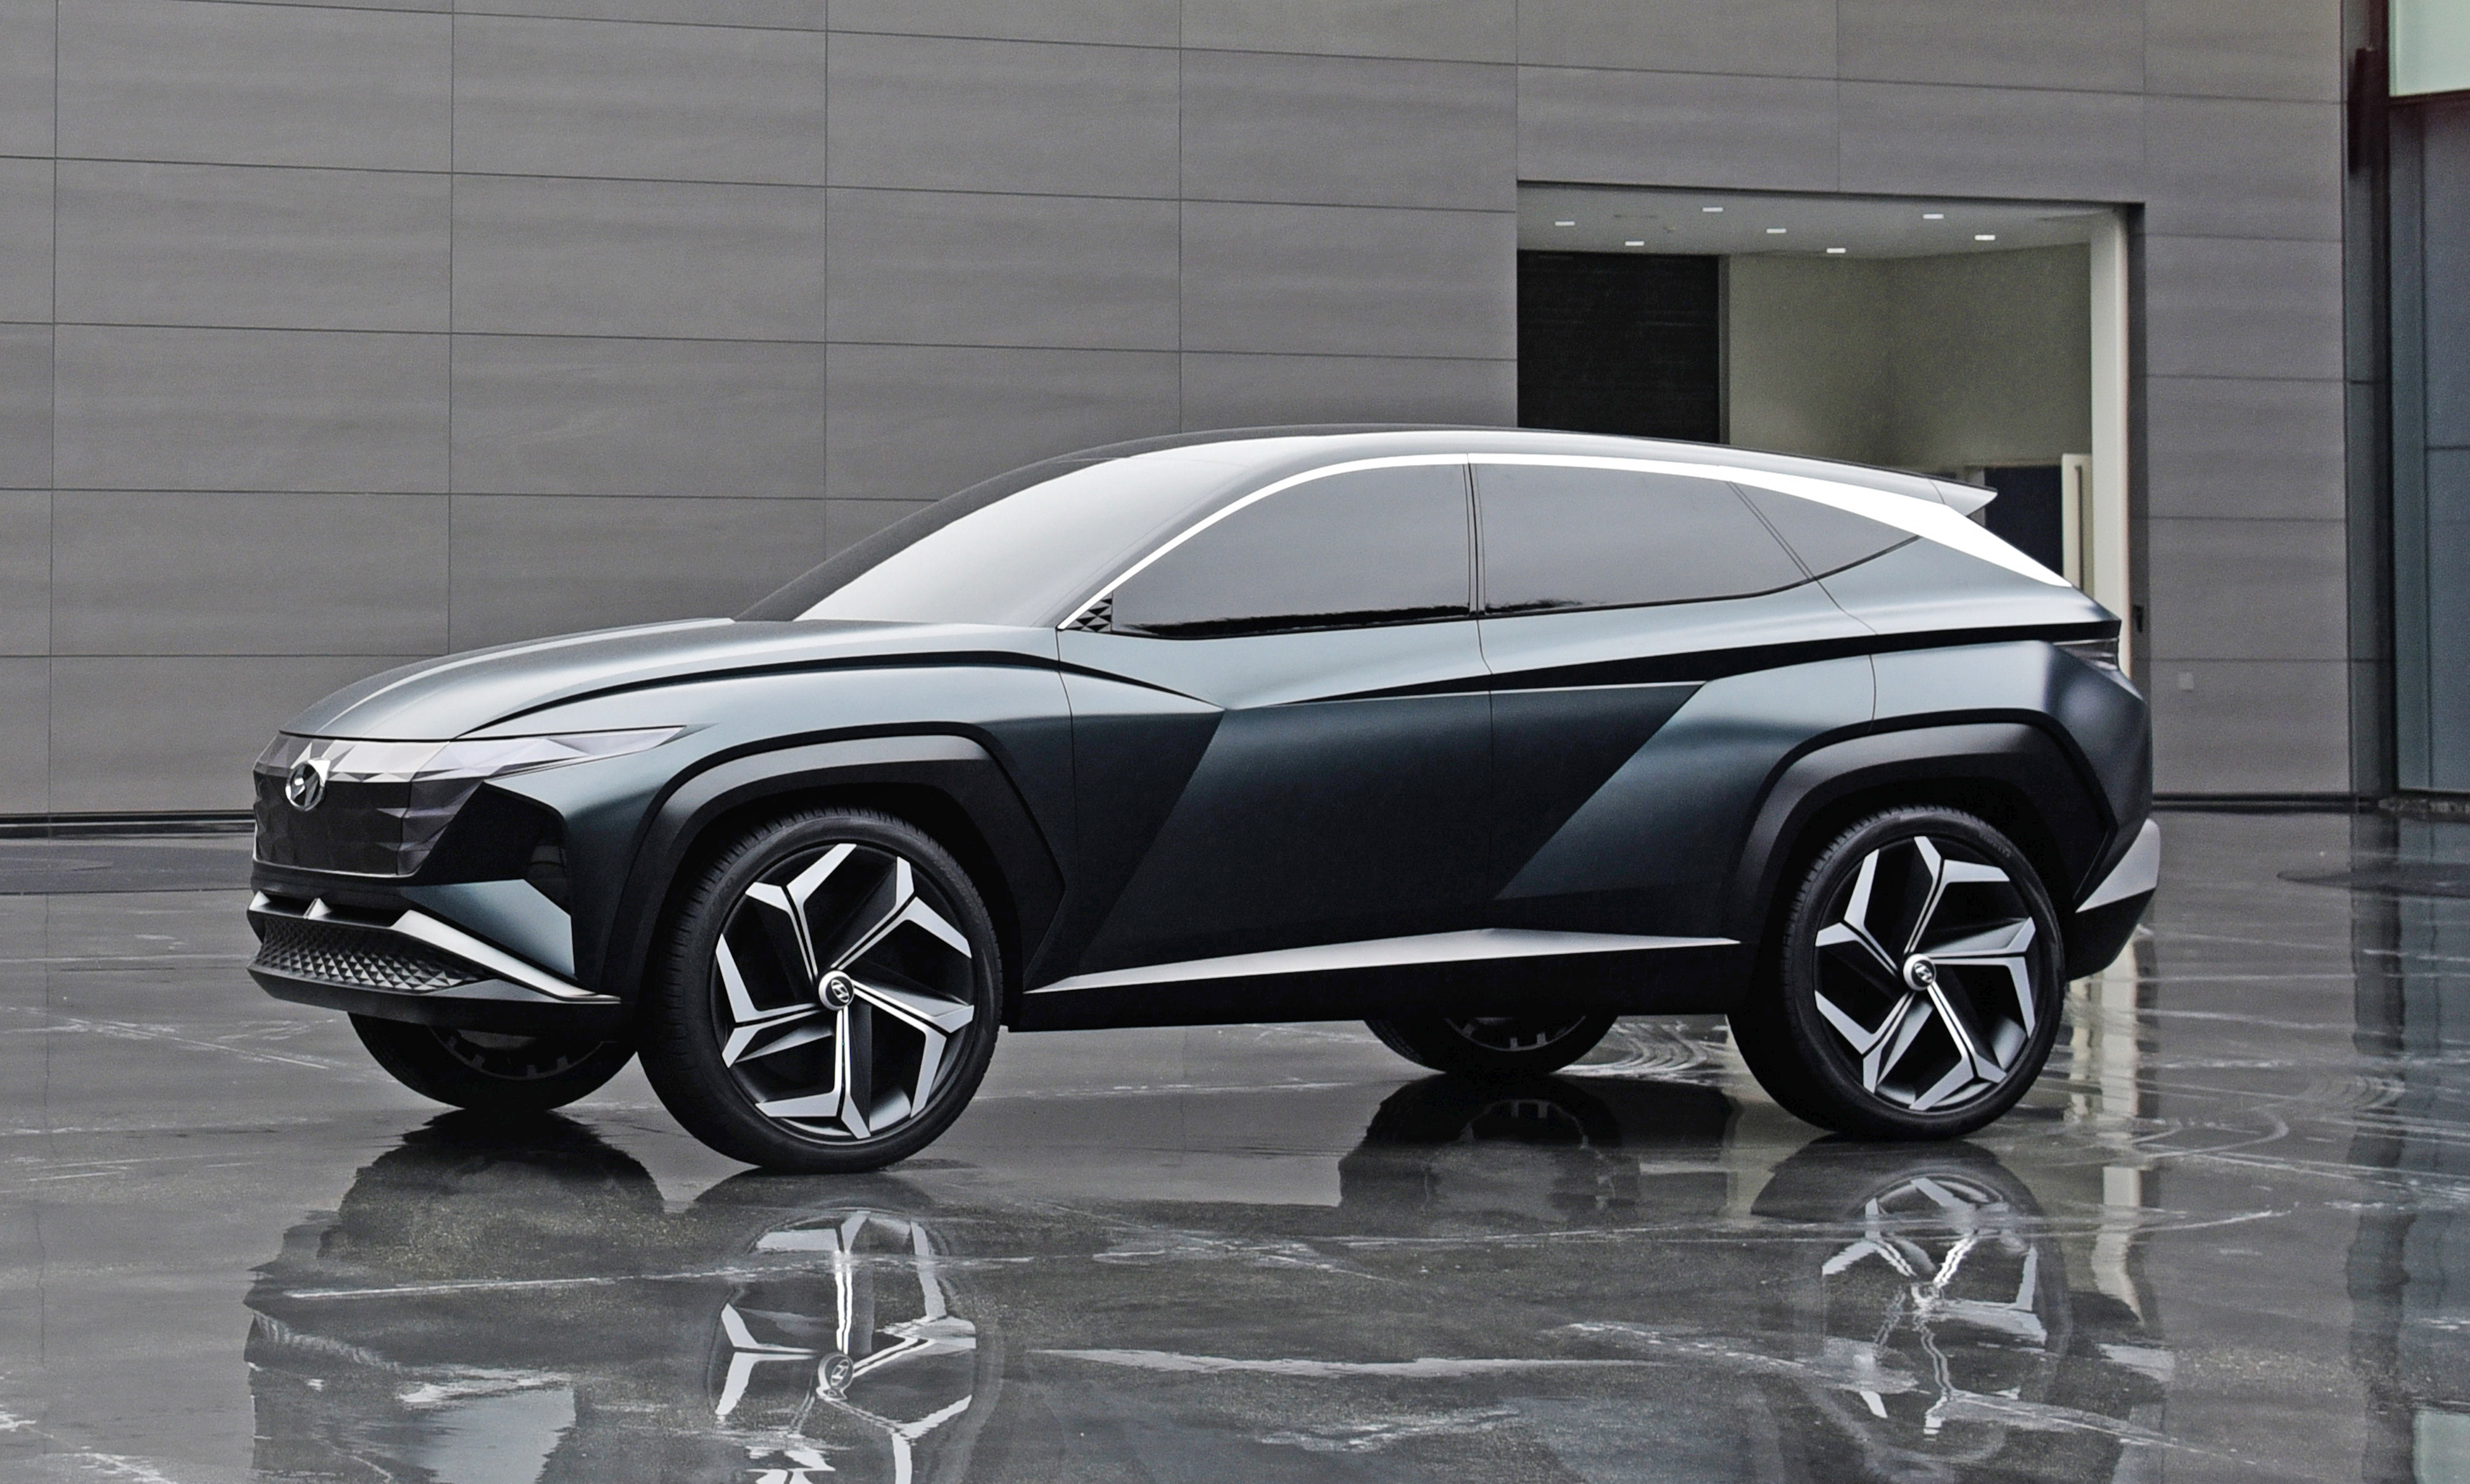 Hyundai Vision T Concept driver-side view